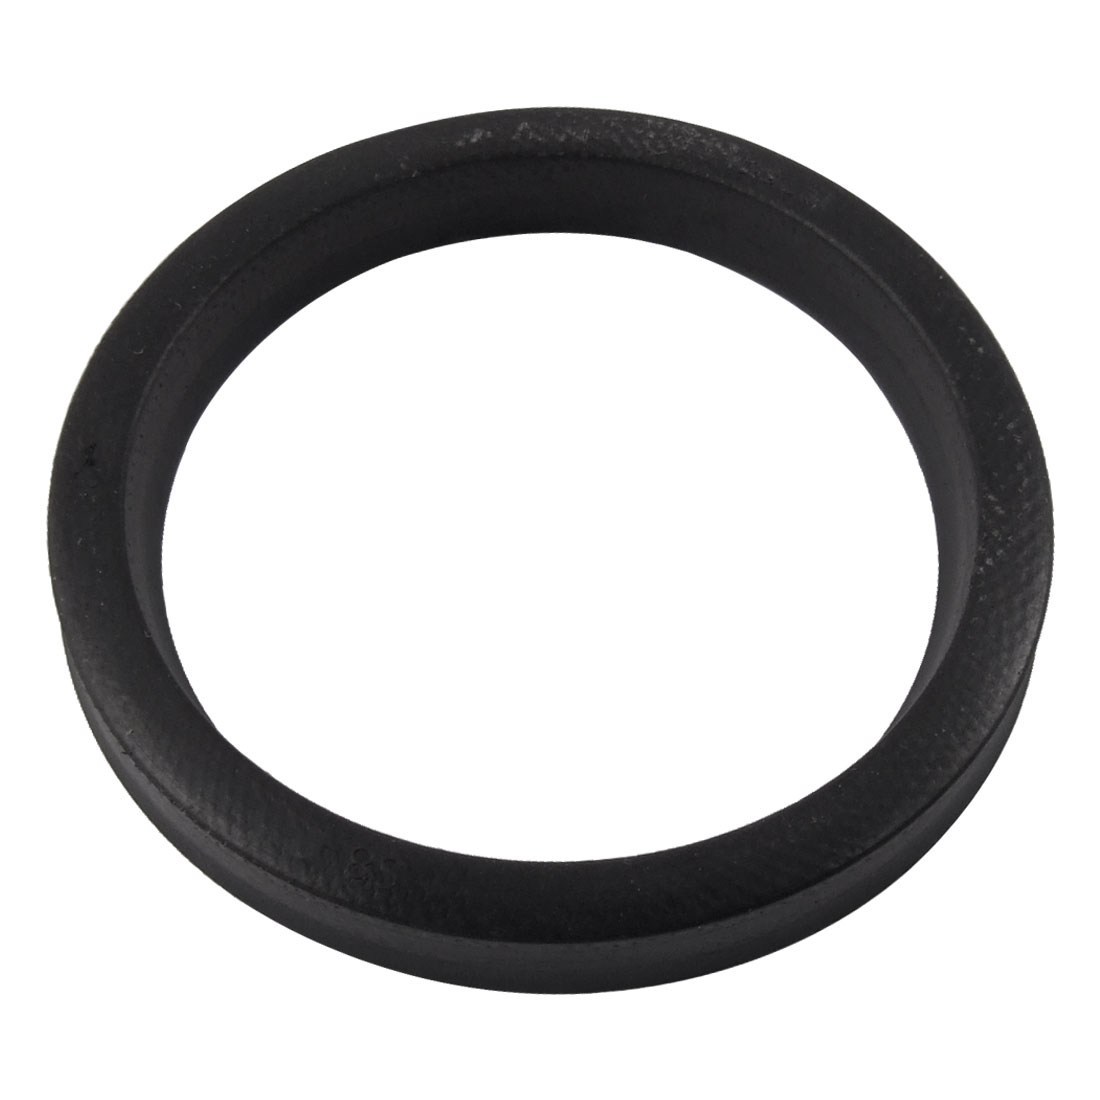 Black NBR 40mm x 48mm x 6.4mm Oil Seal Gasket S8 for Piston Rod